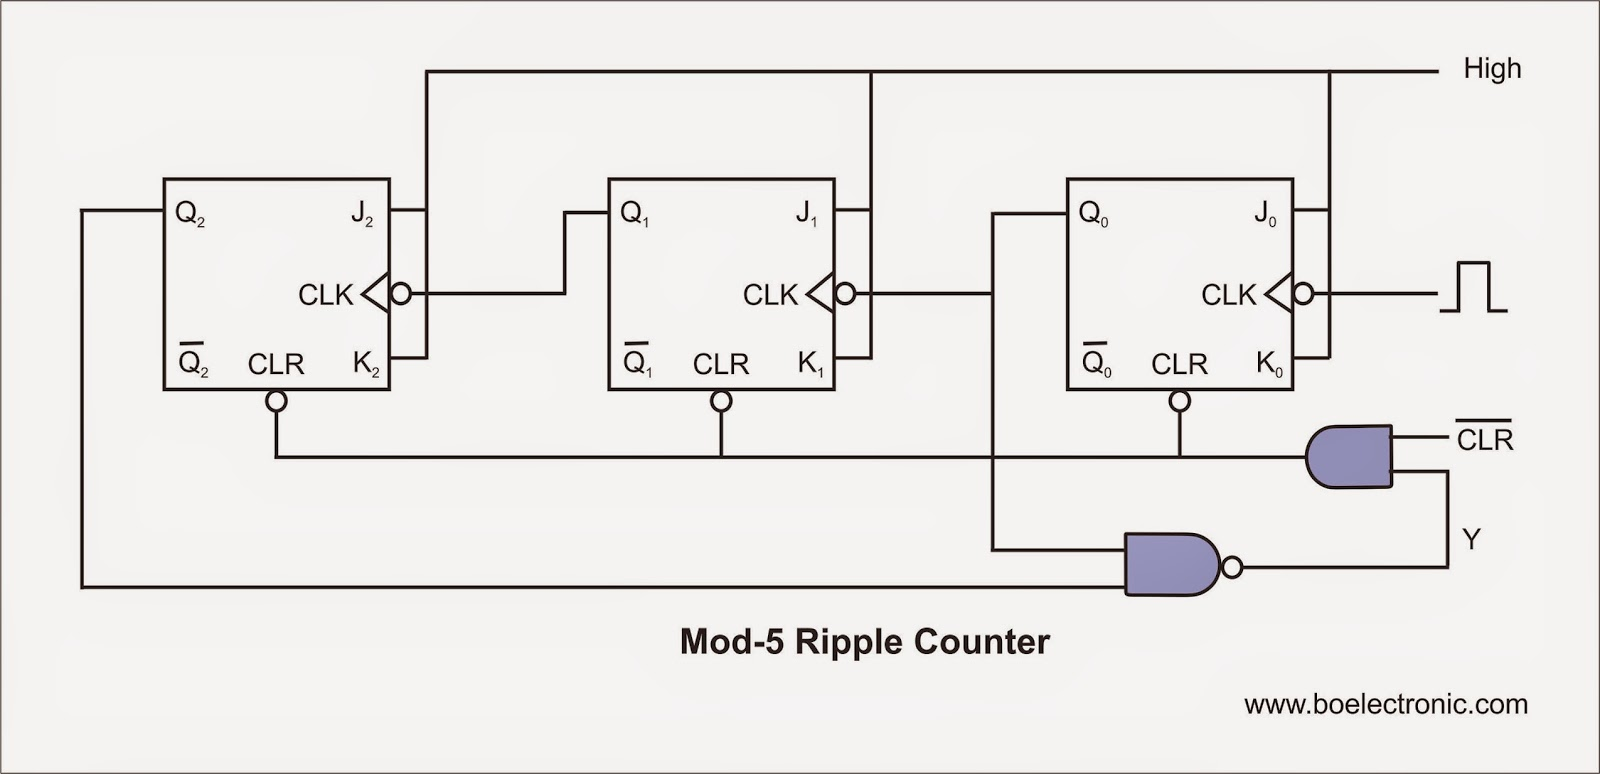 small resolution of mod 6 counter logic diagram